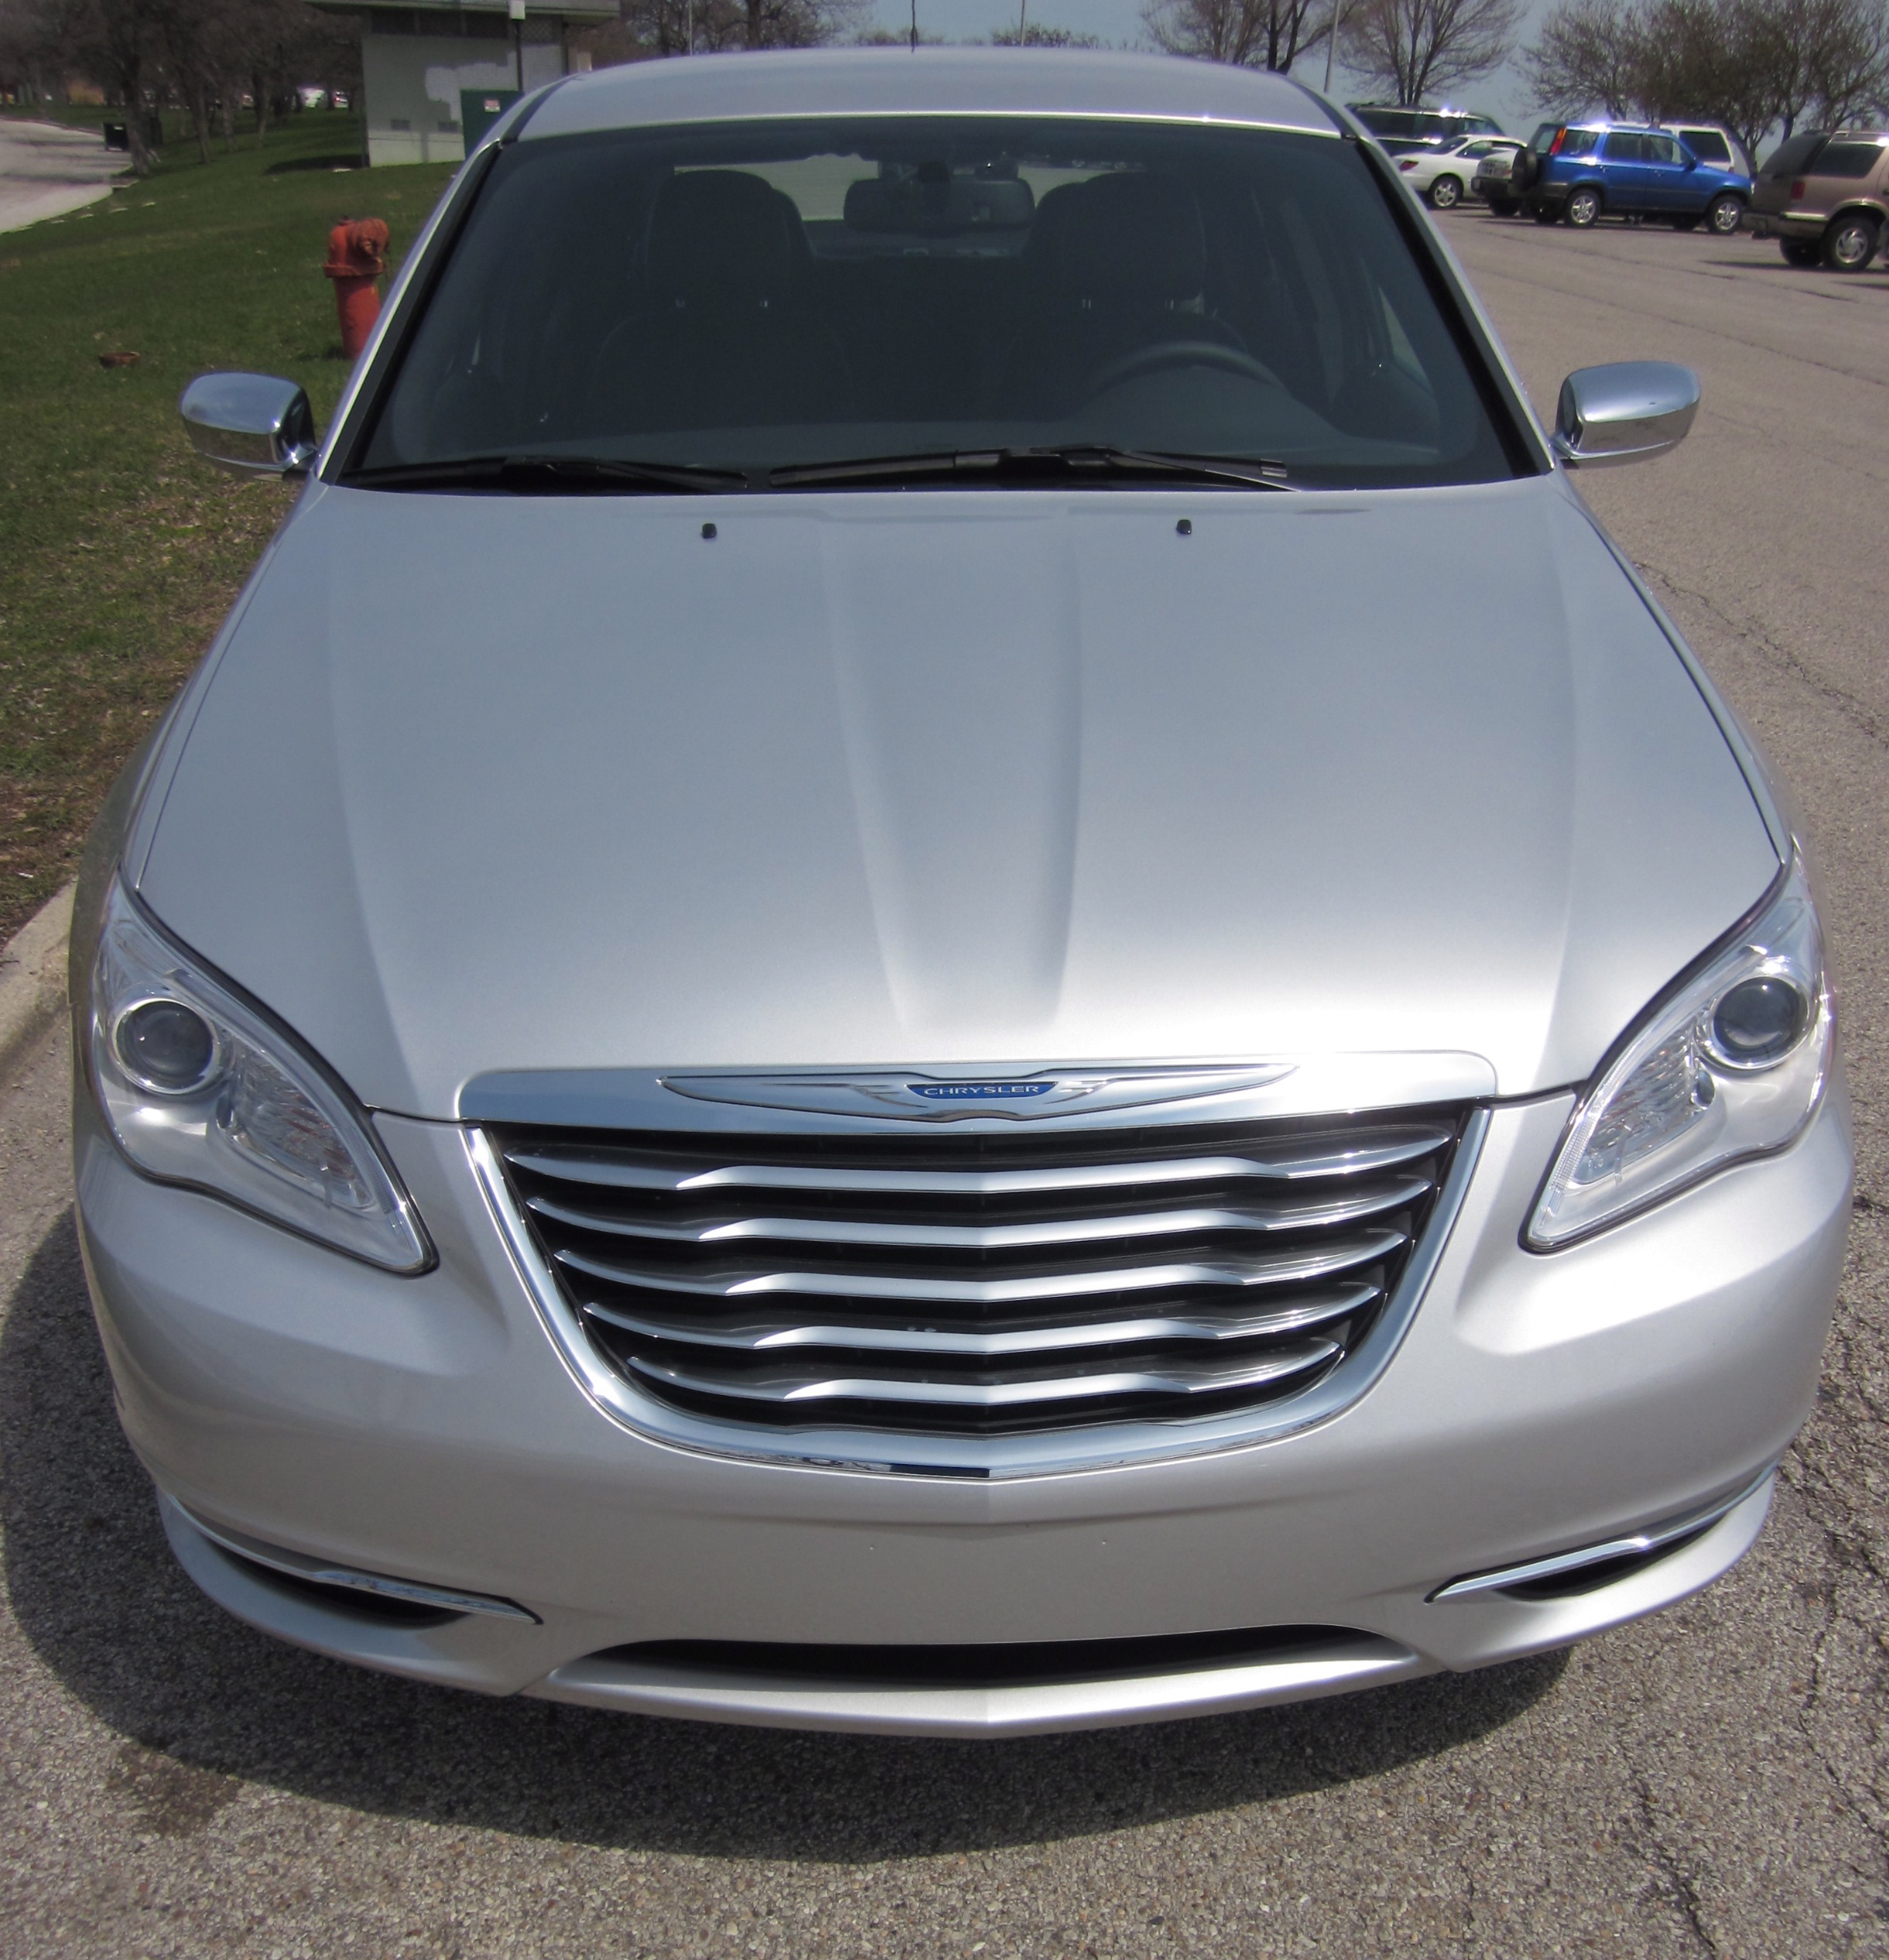 2011 Chrysler 200 First Drive Review